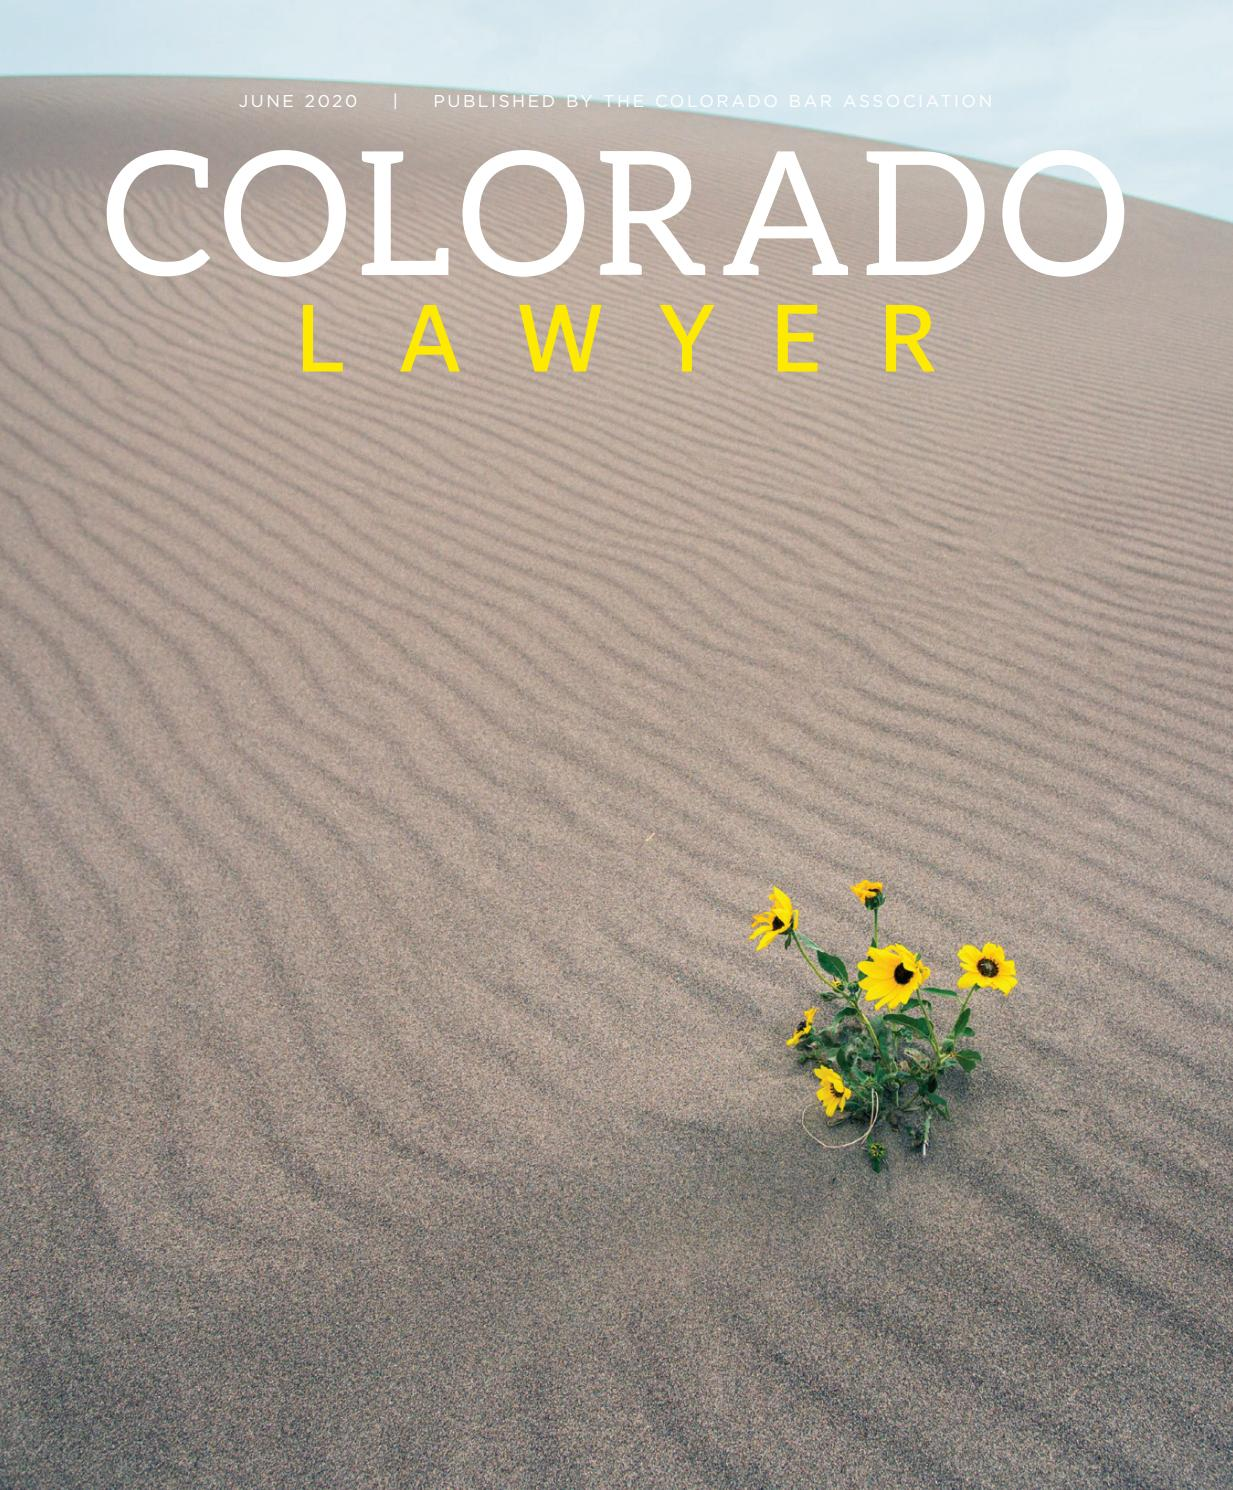 Colorado Lawyer June 2020 By Colorado Lawyer Issuu